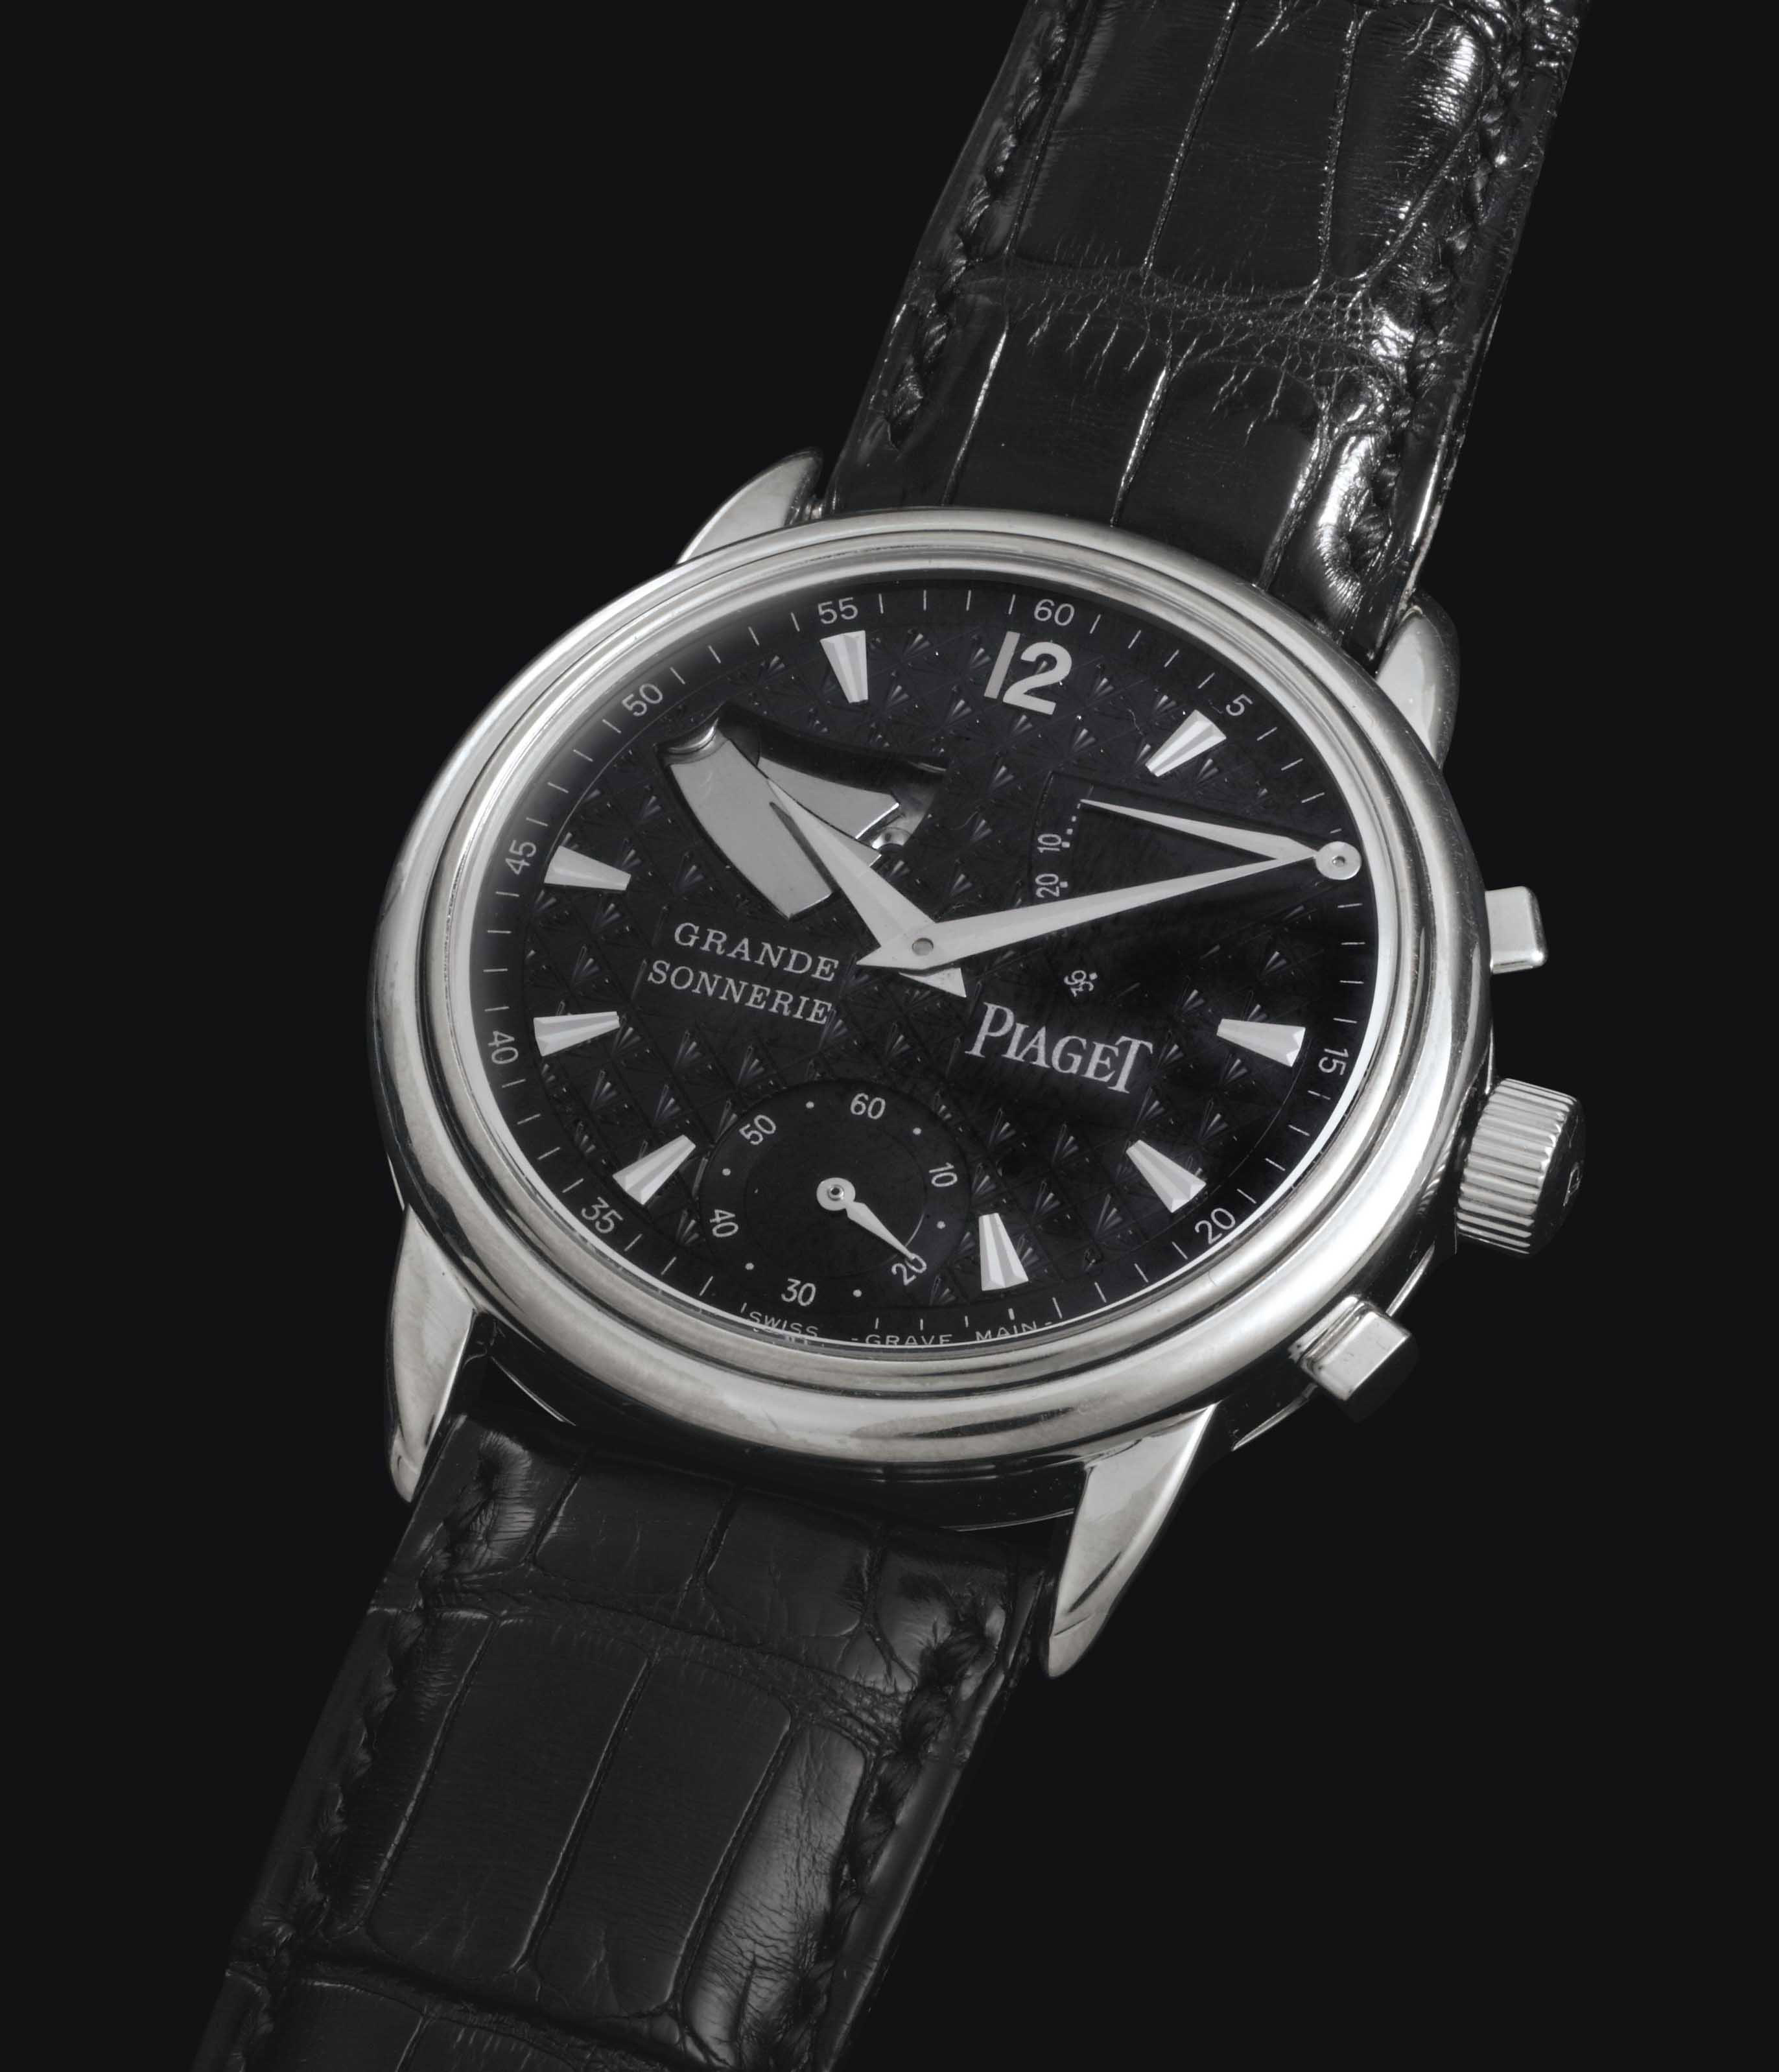 Piaget.  A Very Rare And Fine Limited Series 18k White Gold Minute Repeating Grande And Petite Sonnerie Striking Two-Train Wristwatch With Power Reserve Indication